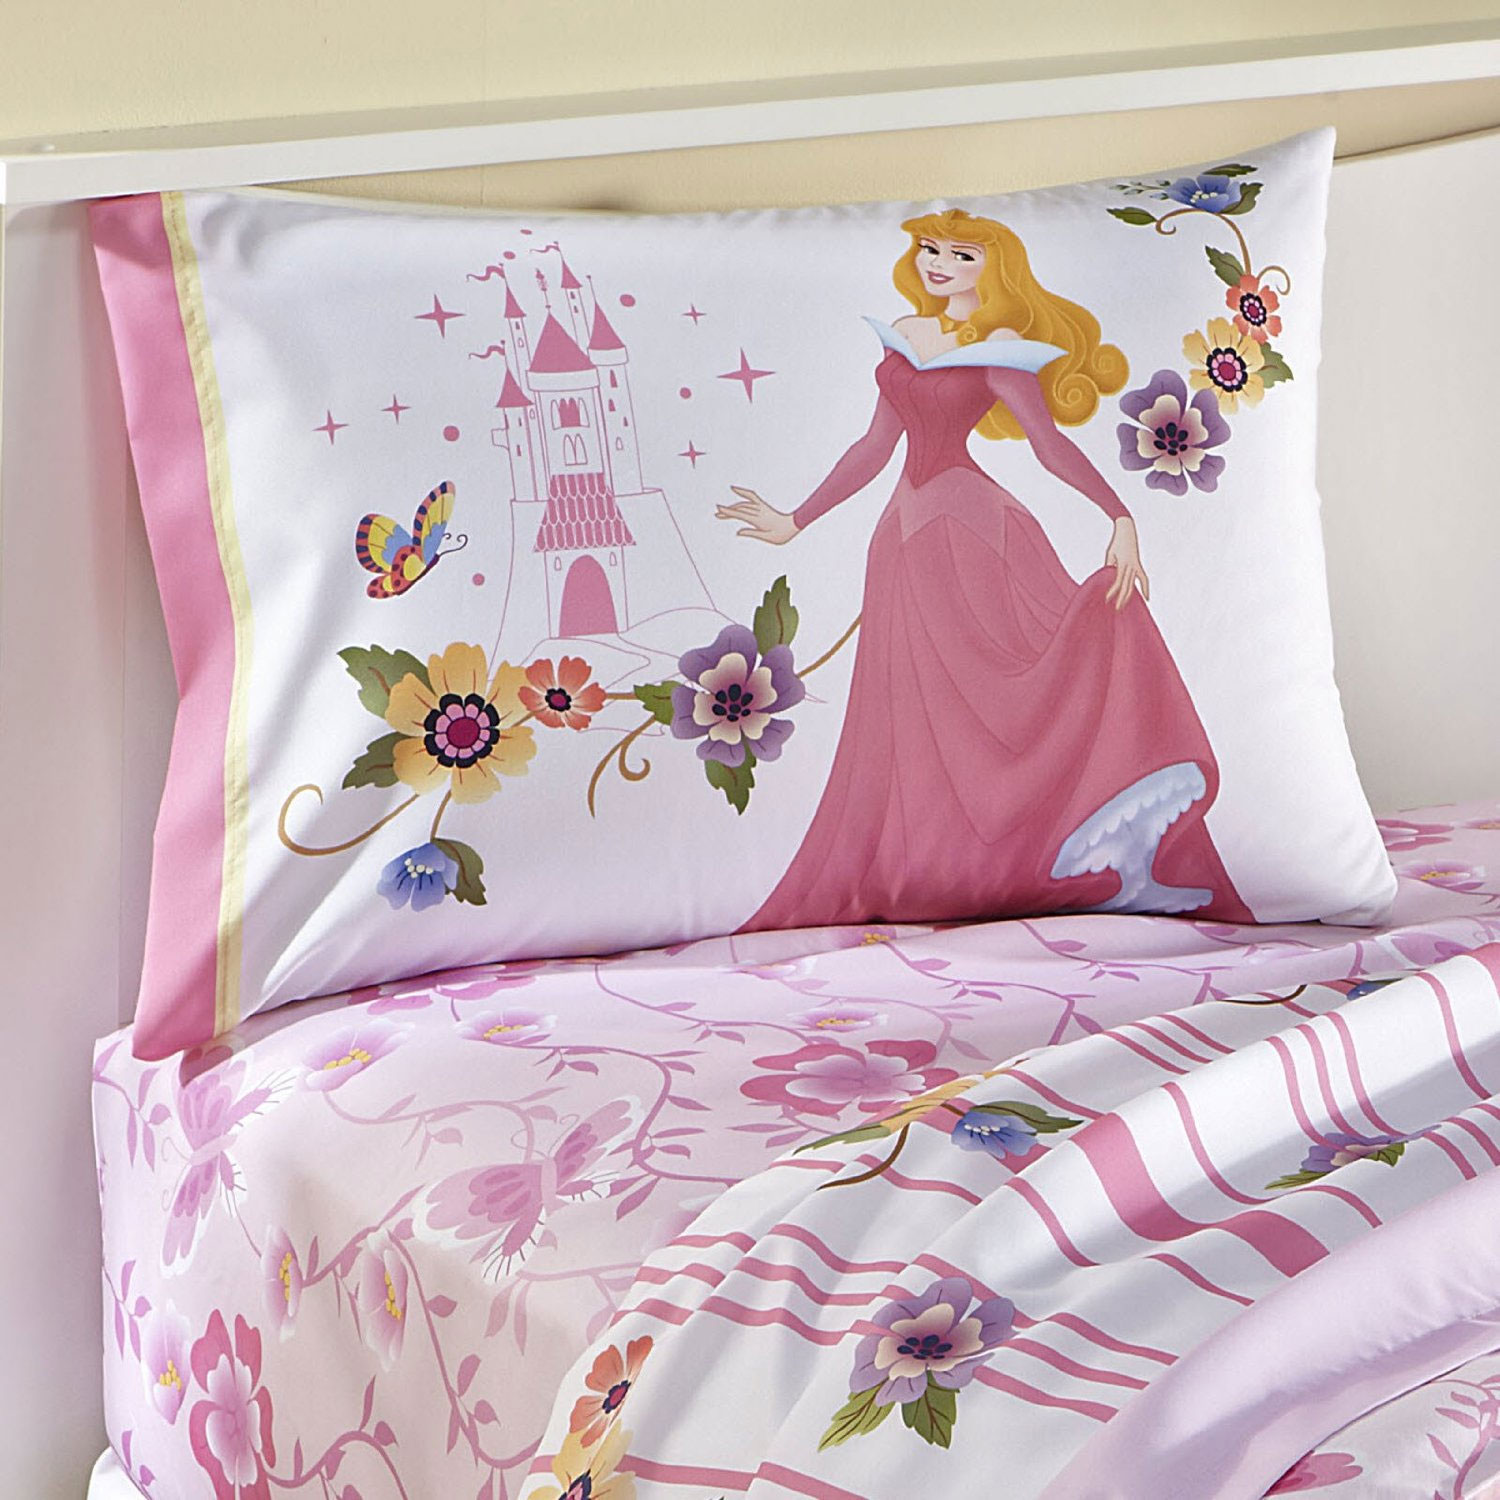 Disney Princess Sleeping Beauty Reversible Pillowcase